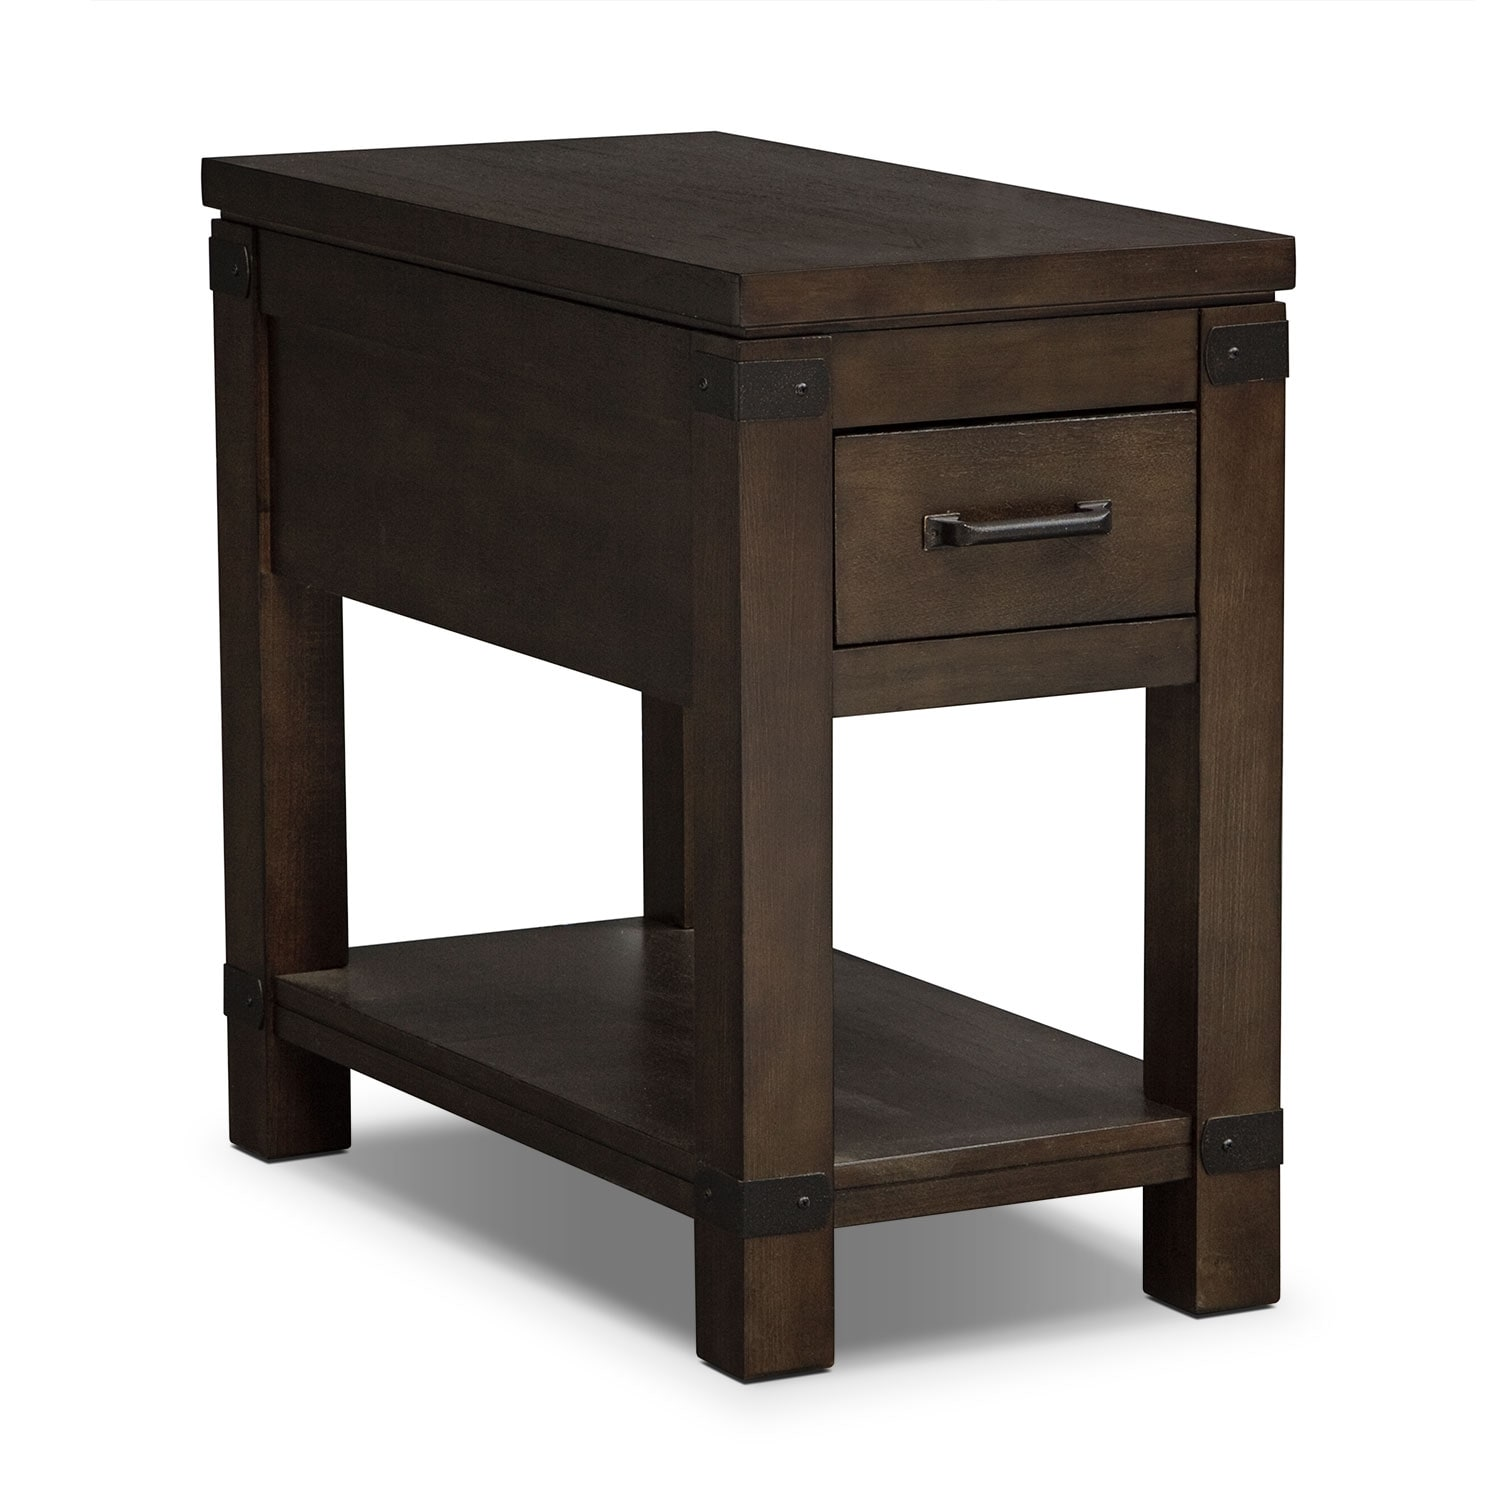 Camryn Chairside Table - Warm Cocoa